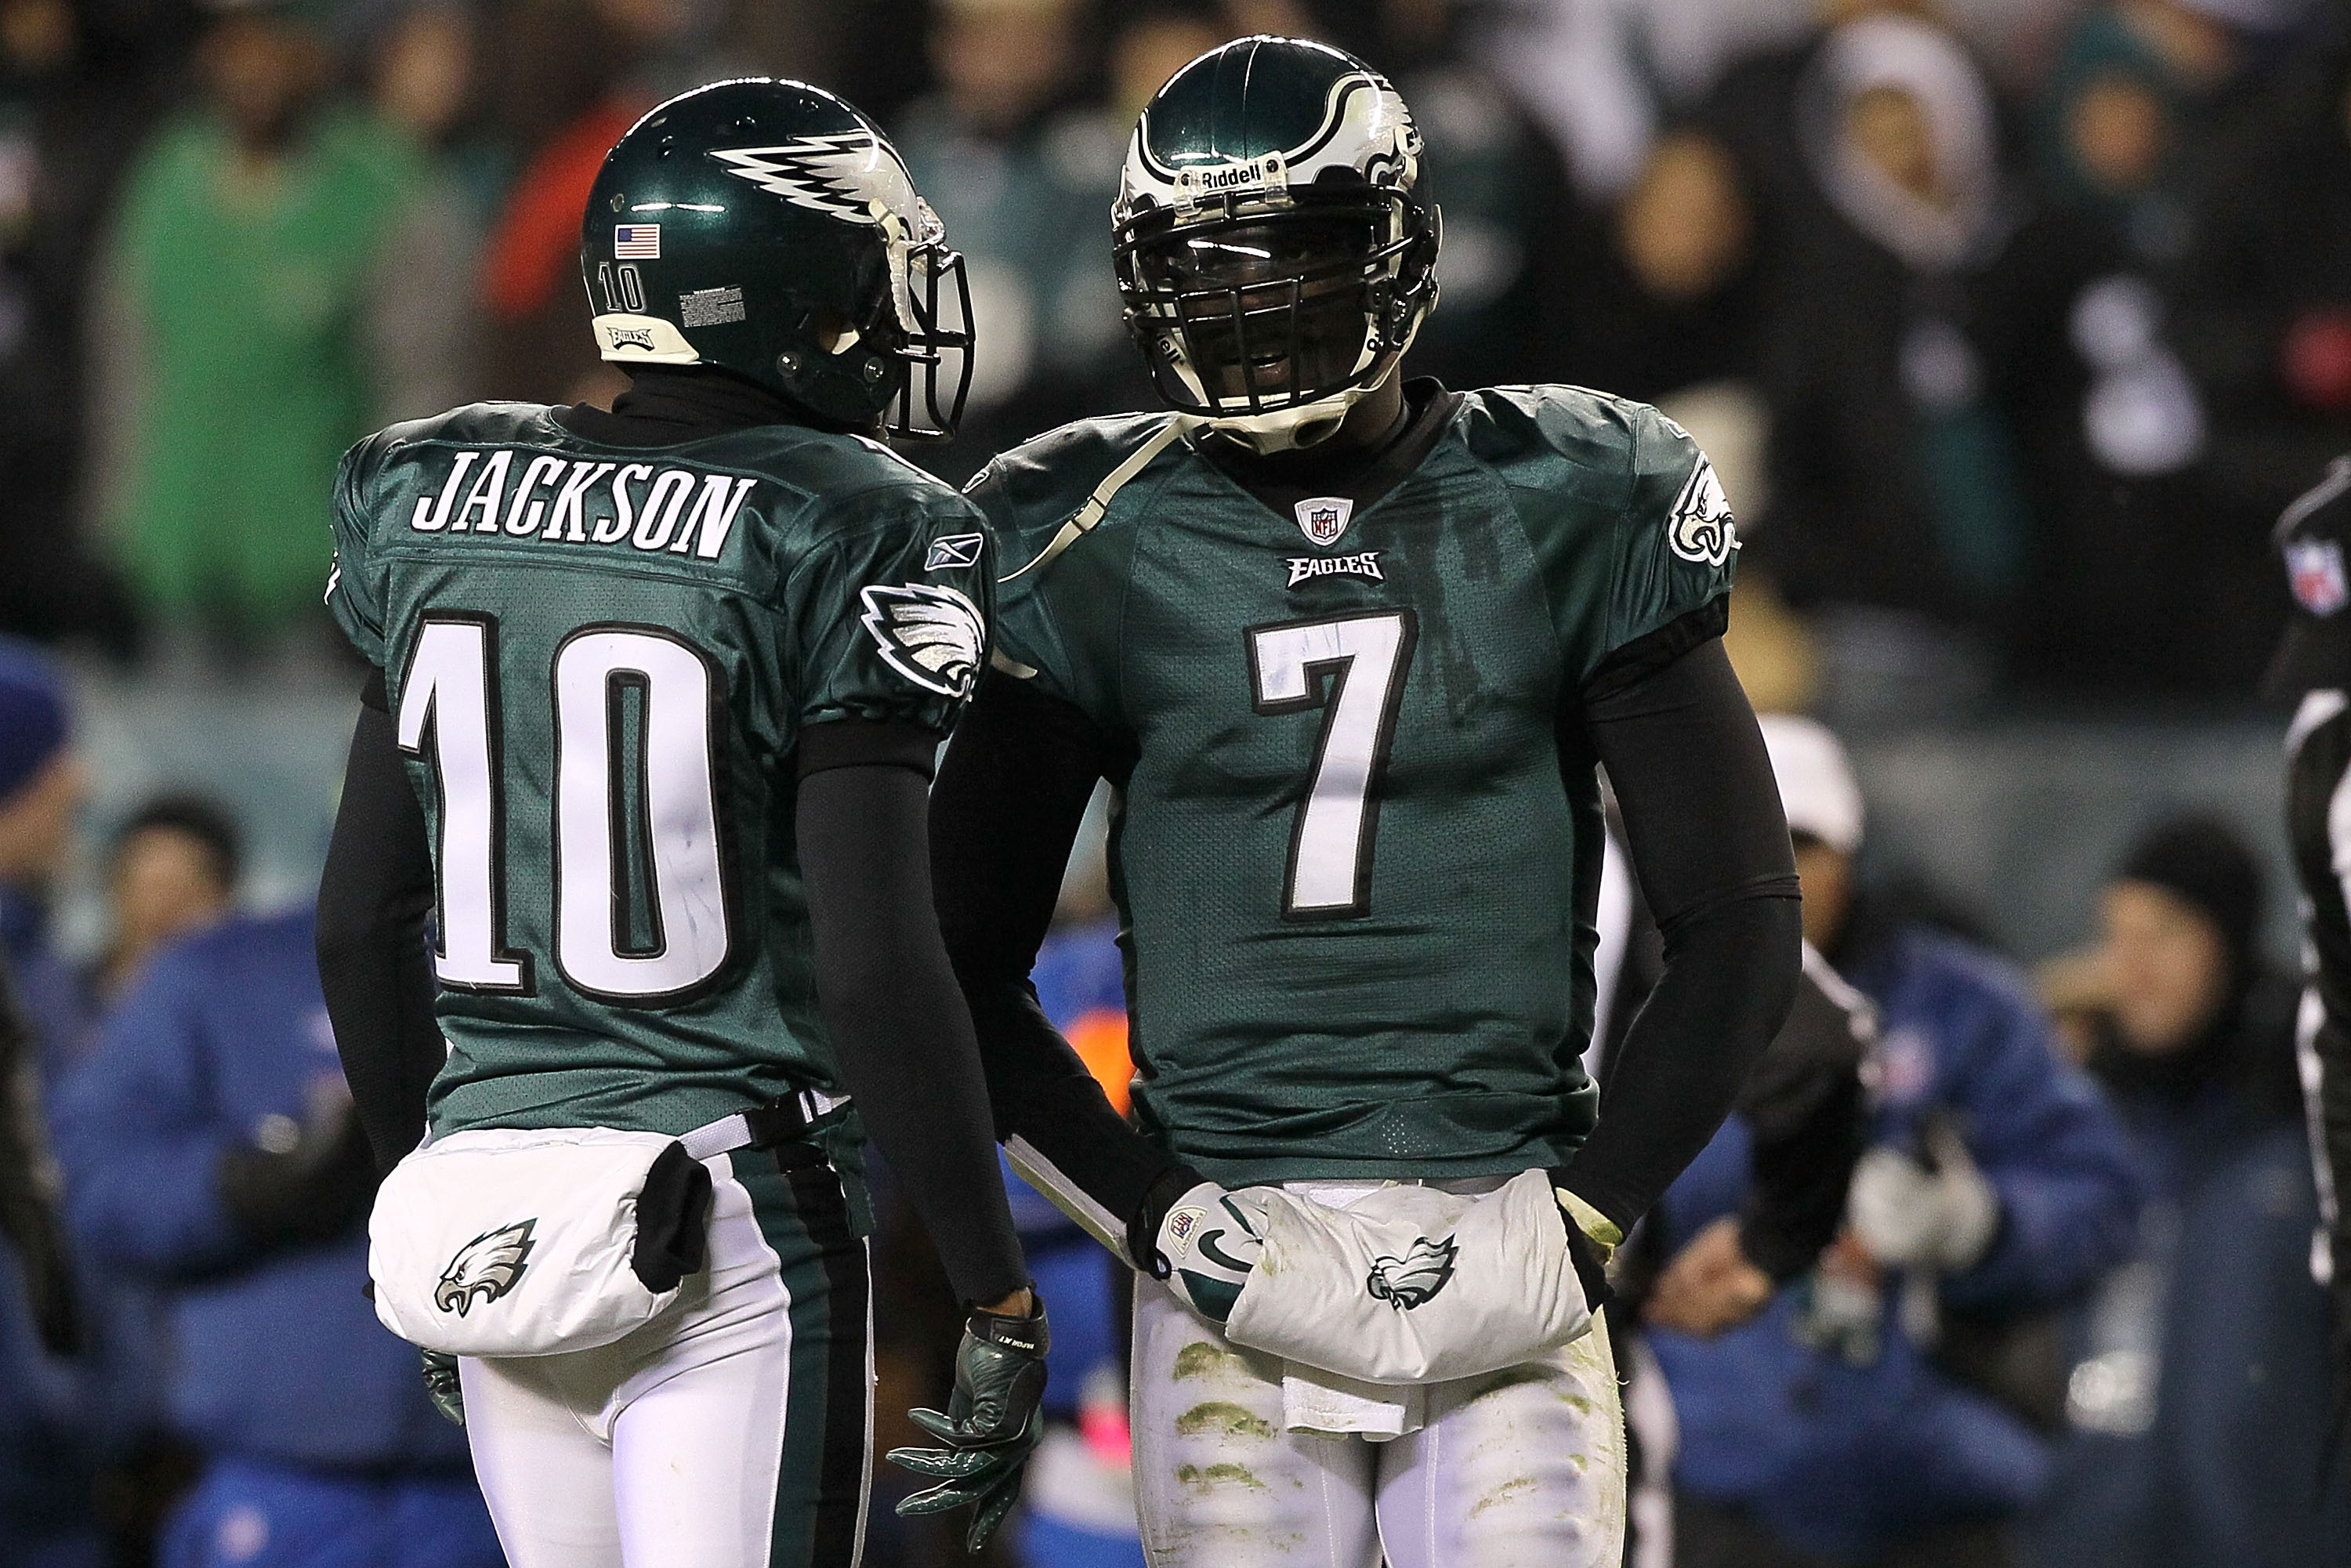 sale retailer da8a2 544aa Philadelphia Eagles: 7 Reasons DeSean Jackson Deserves a ...